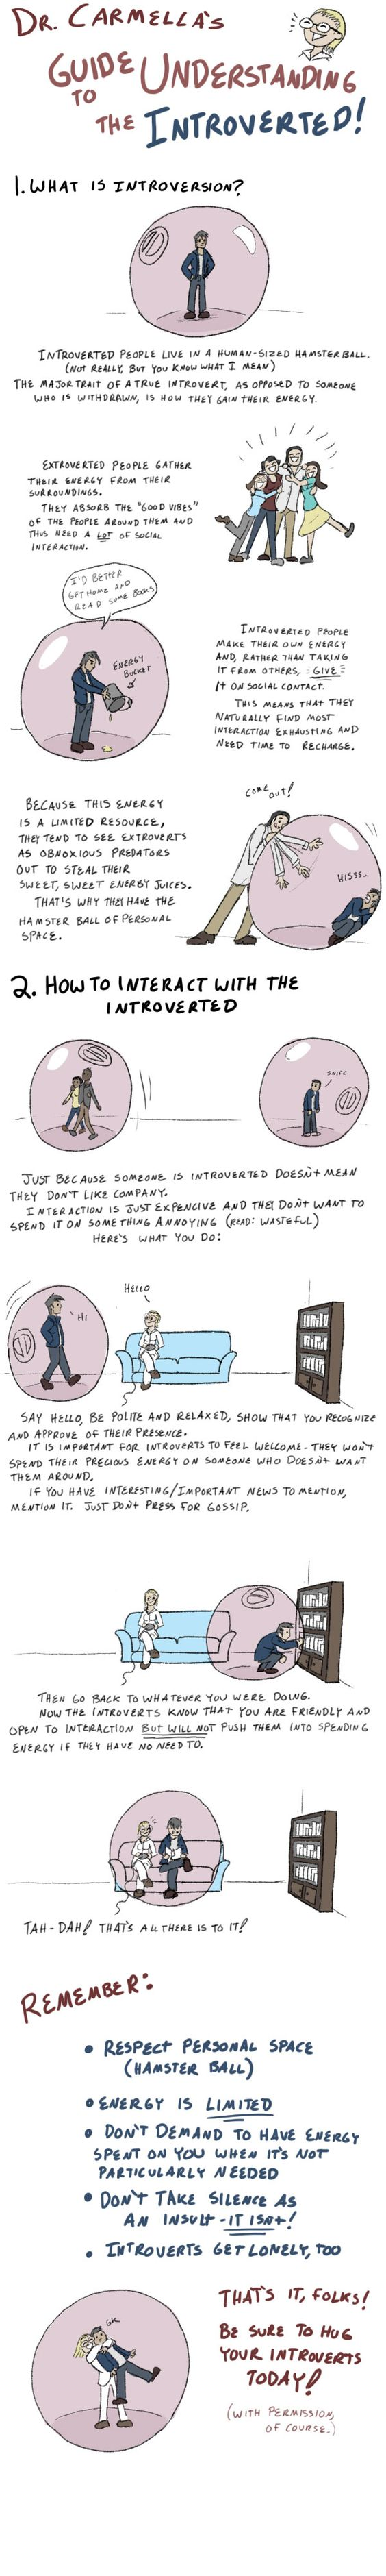 omg love this!! hissssss, haha.  #introverts    http://img.pr0gramm.com/2012/06/introverts.jpg